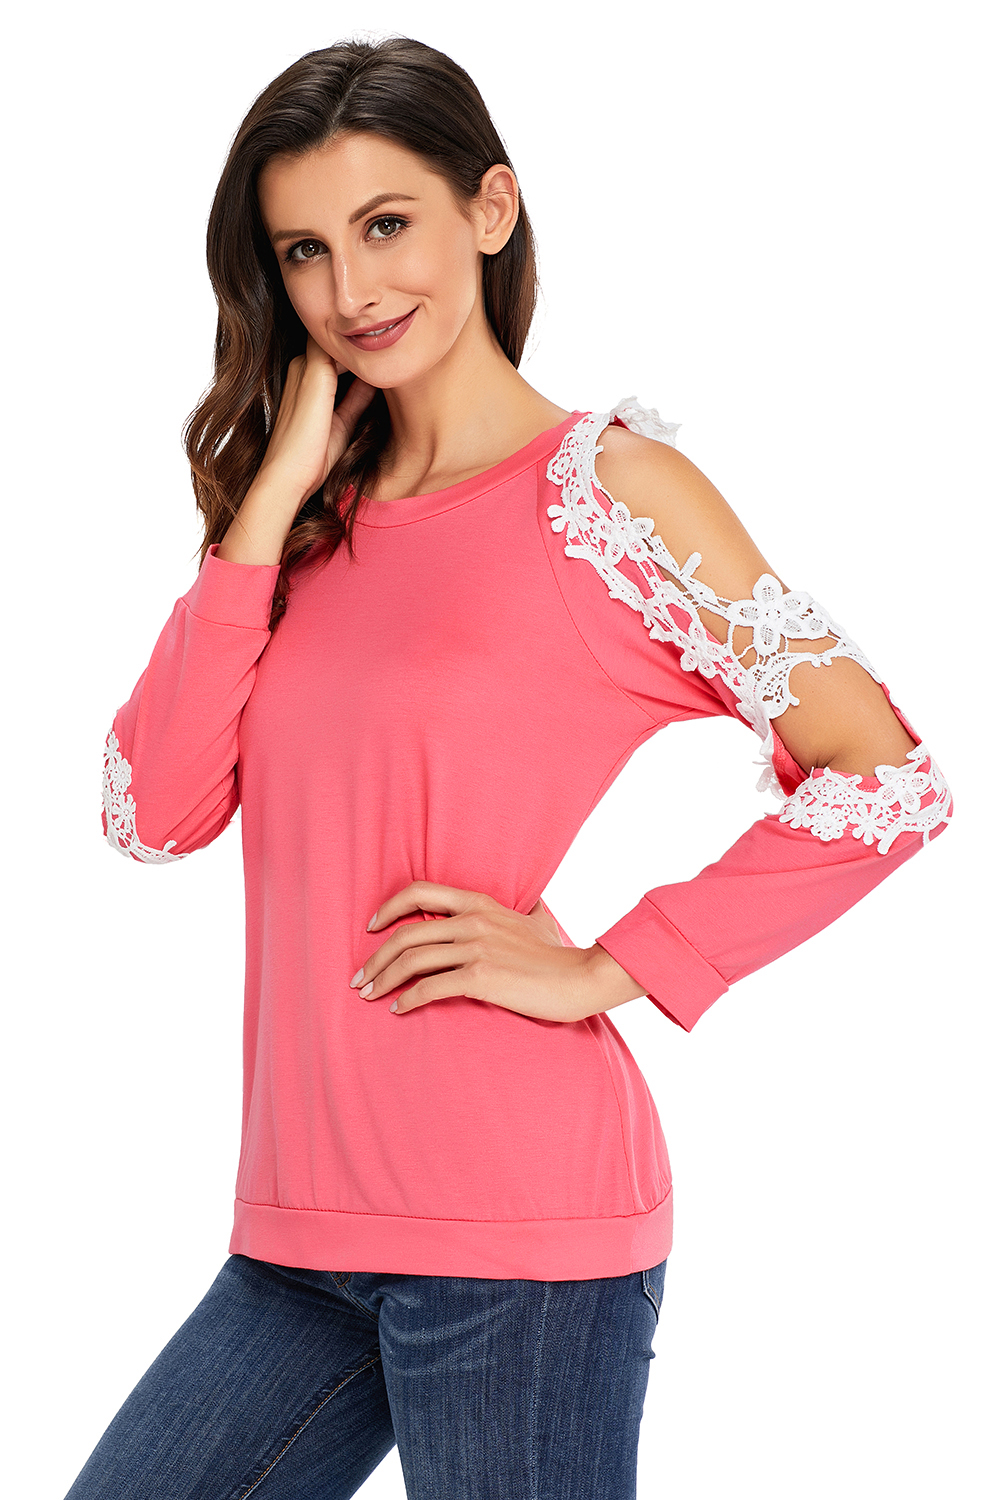 Lace trim cold shoulder long sleeve top womens shirt ...